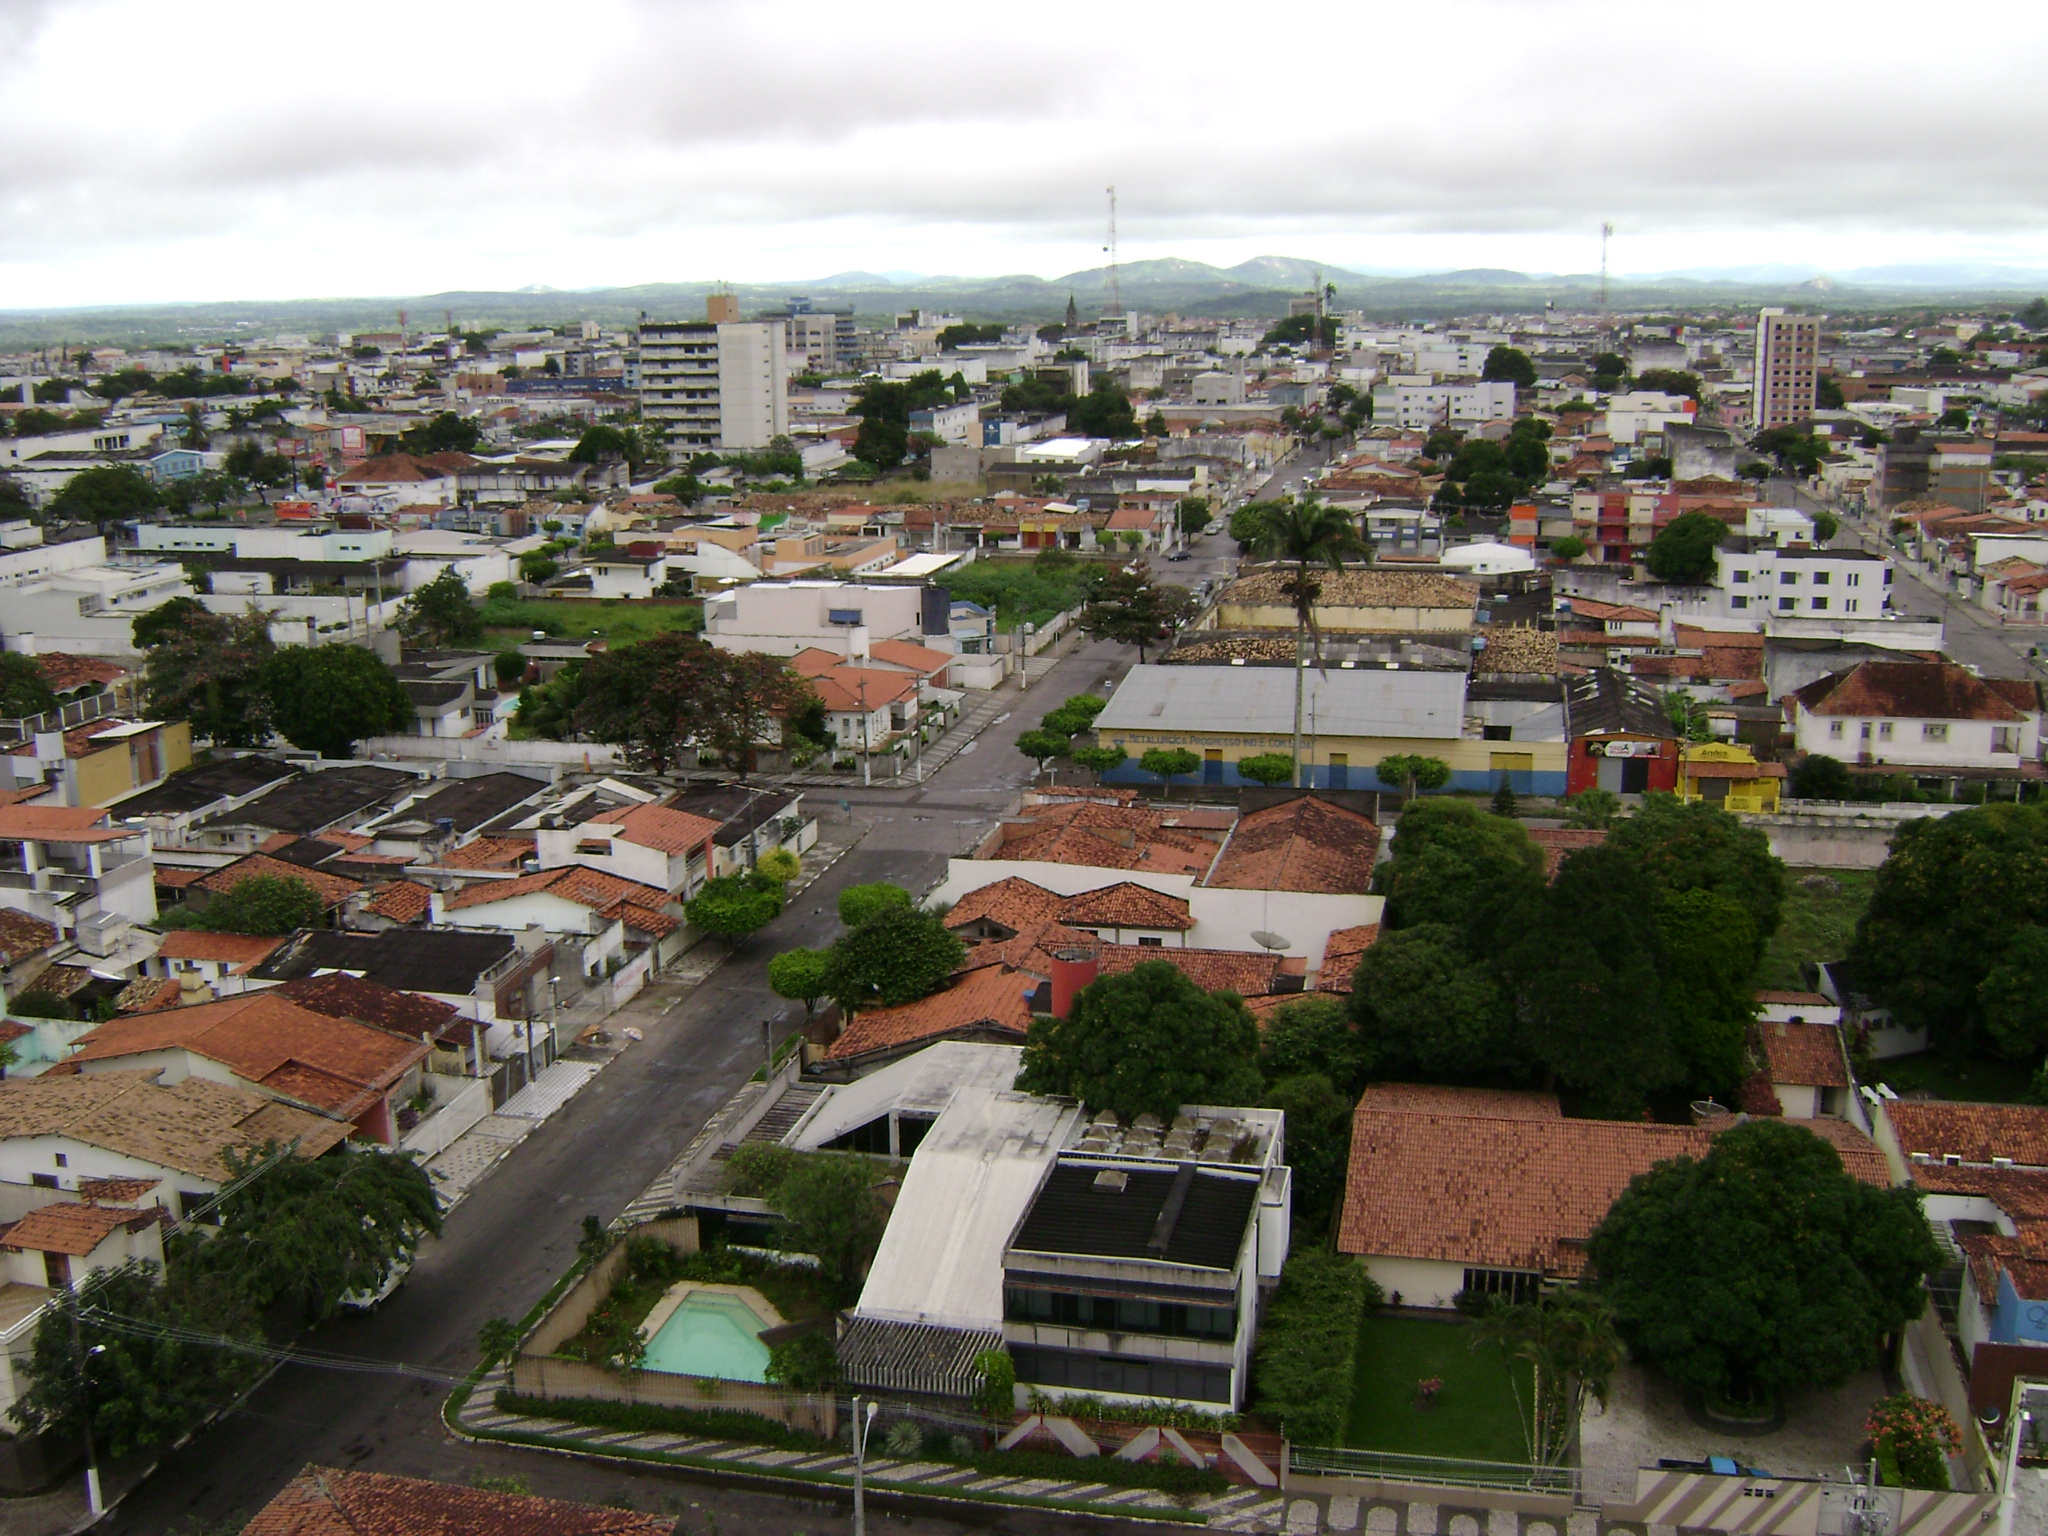 skyline view of Feira de Santana